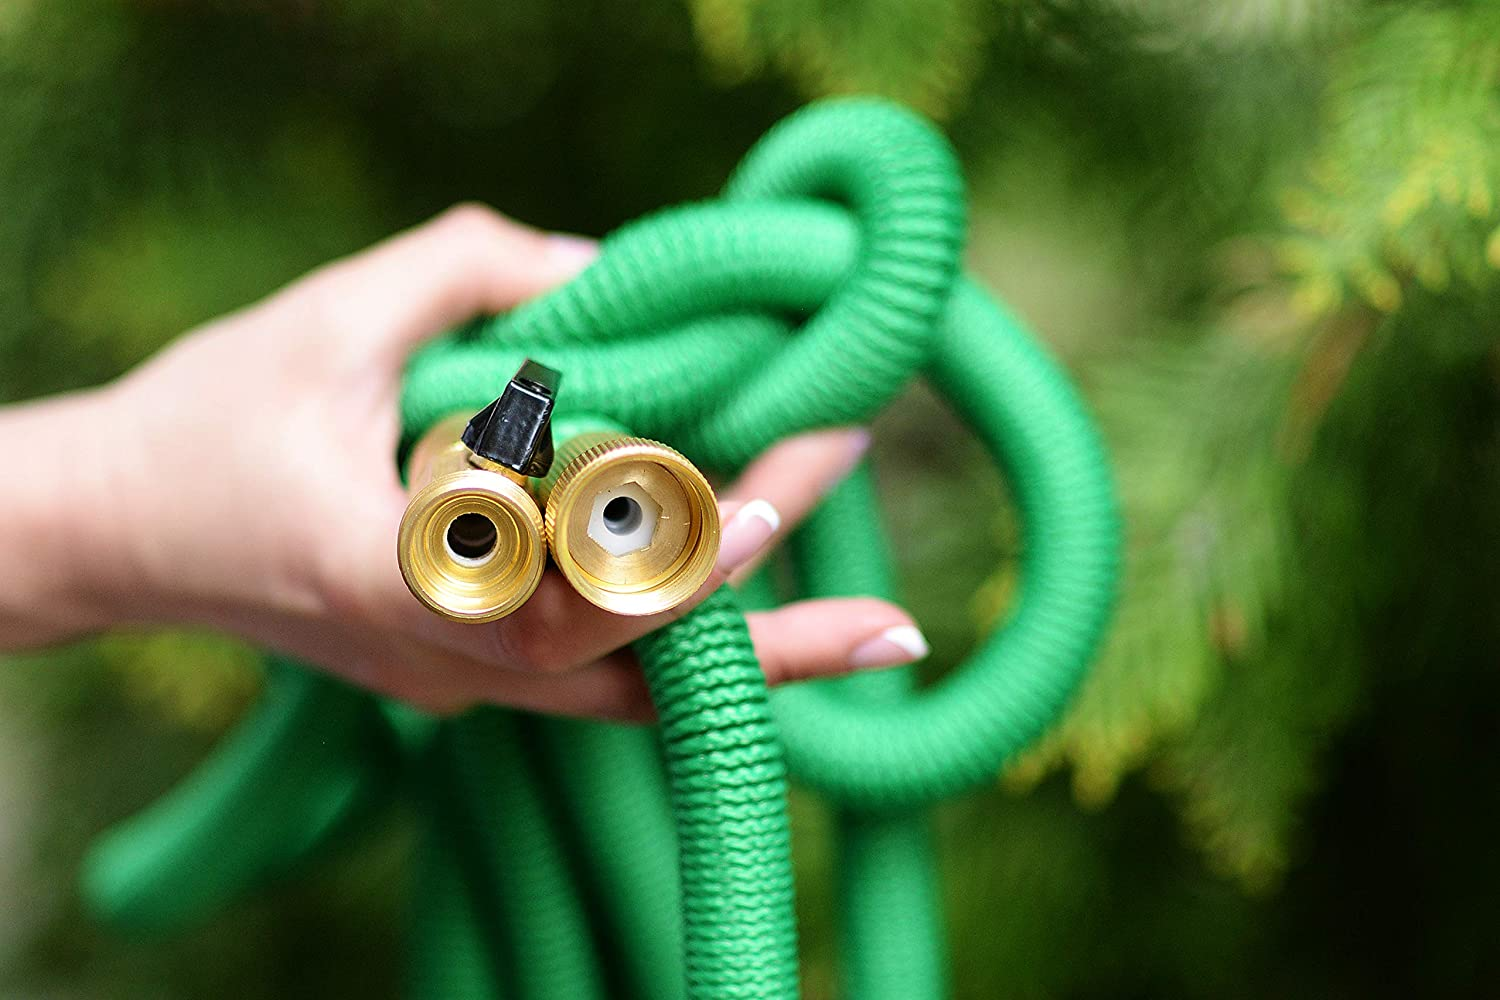 Heavy Duty Garden Water Hose Riemex Expandable Hose Green Triple Latex Expanding Solid Brass Metal Fittings Connectors 25 FT New 2019 Flexible Strongest for All Watering Needs